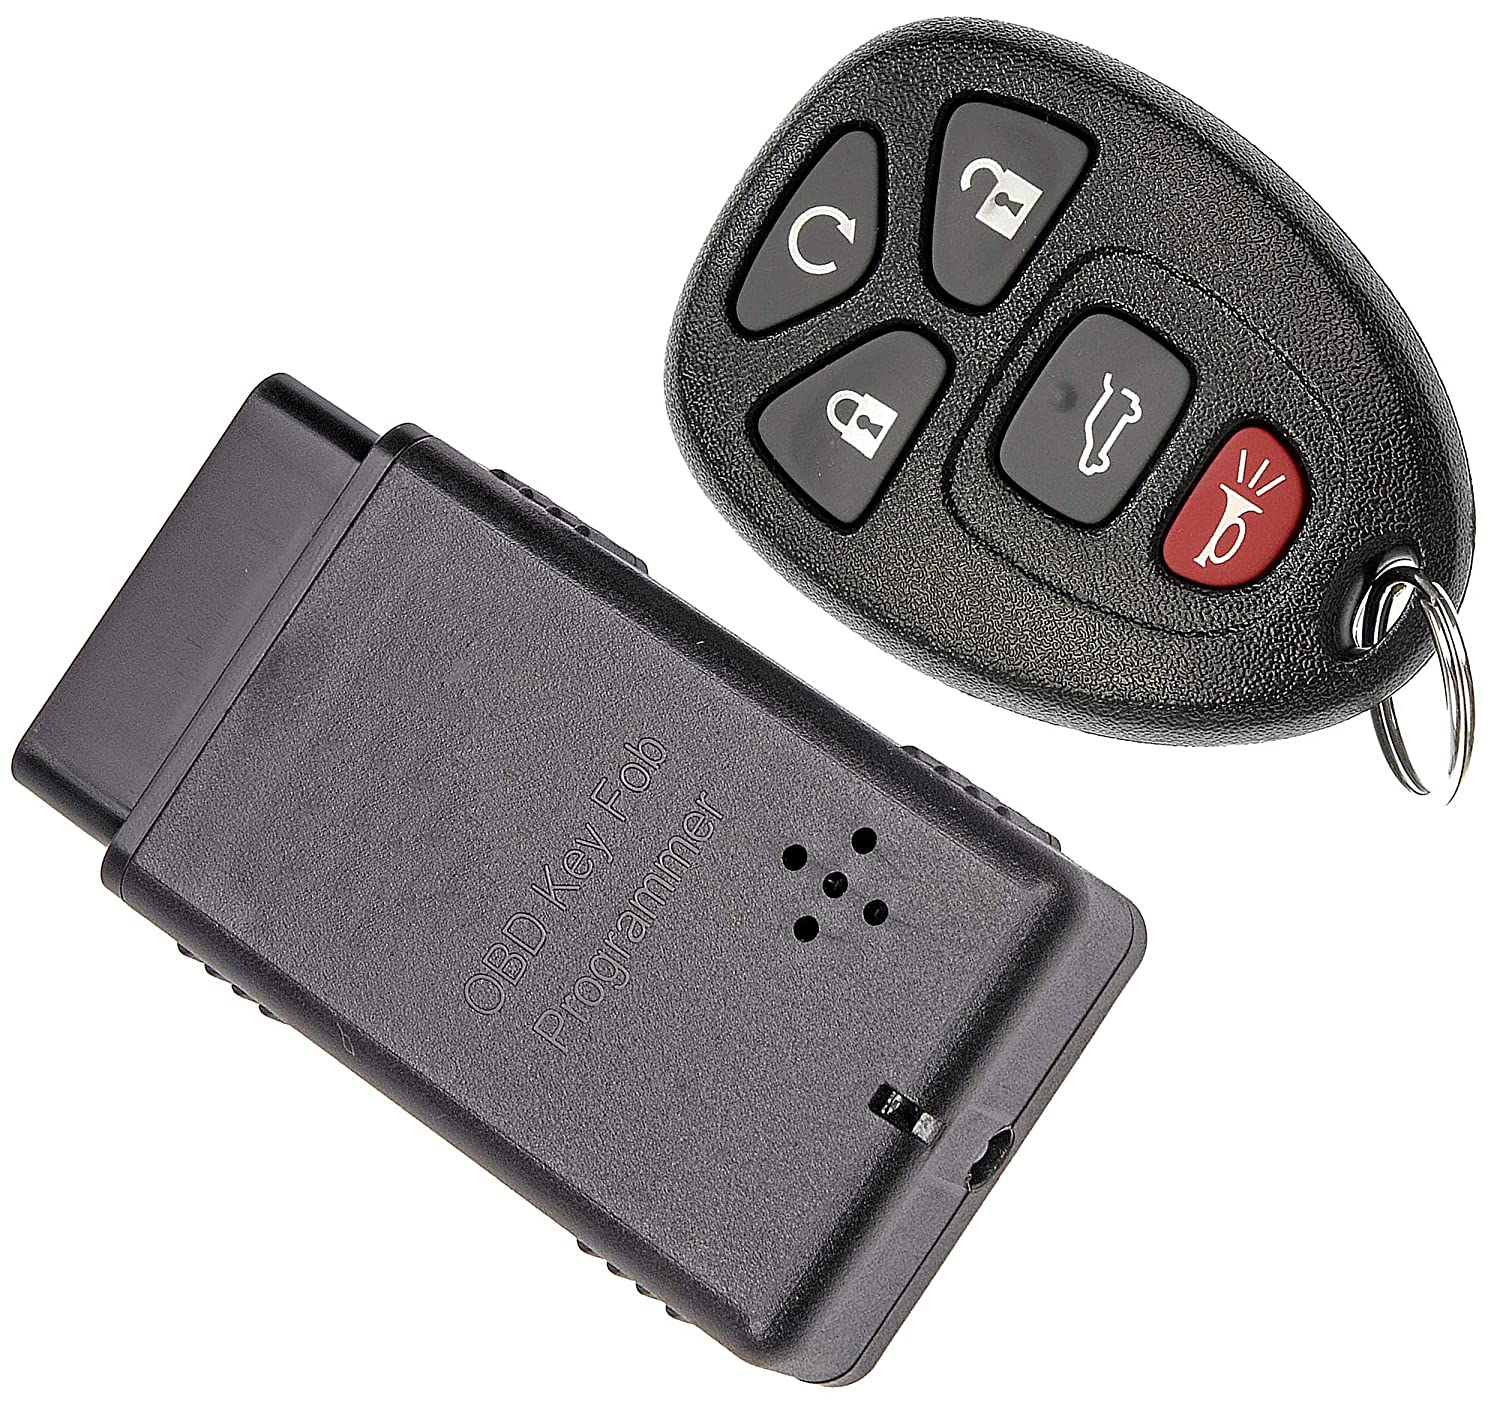 APDTY 121923 Keyless Entry Remote Transponder Key Fob w/Auto Programming  Tool (Fits Models With Auto Start Software